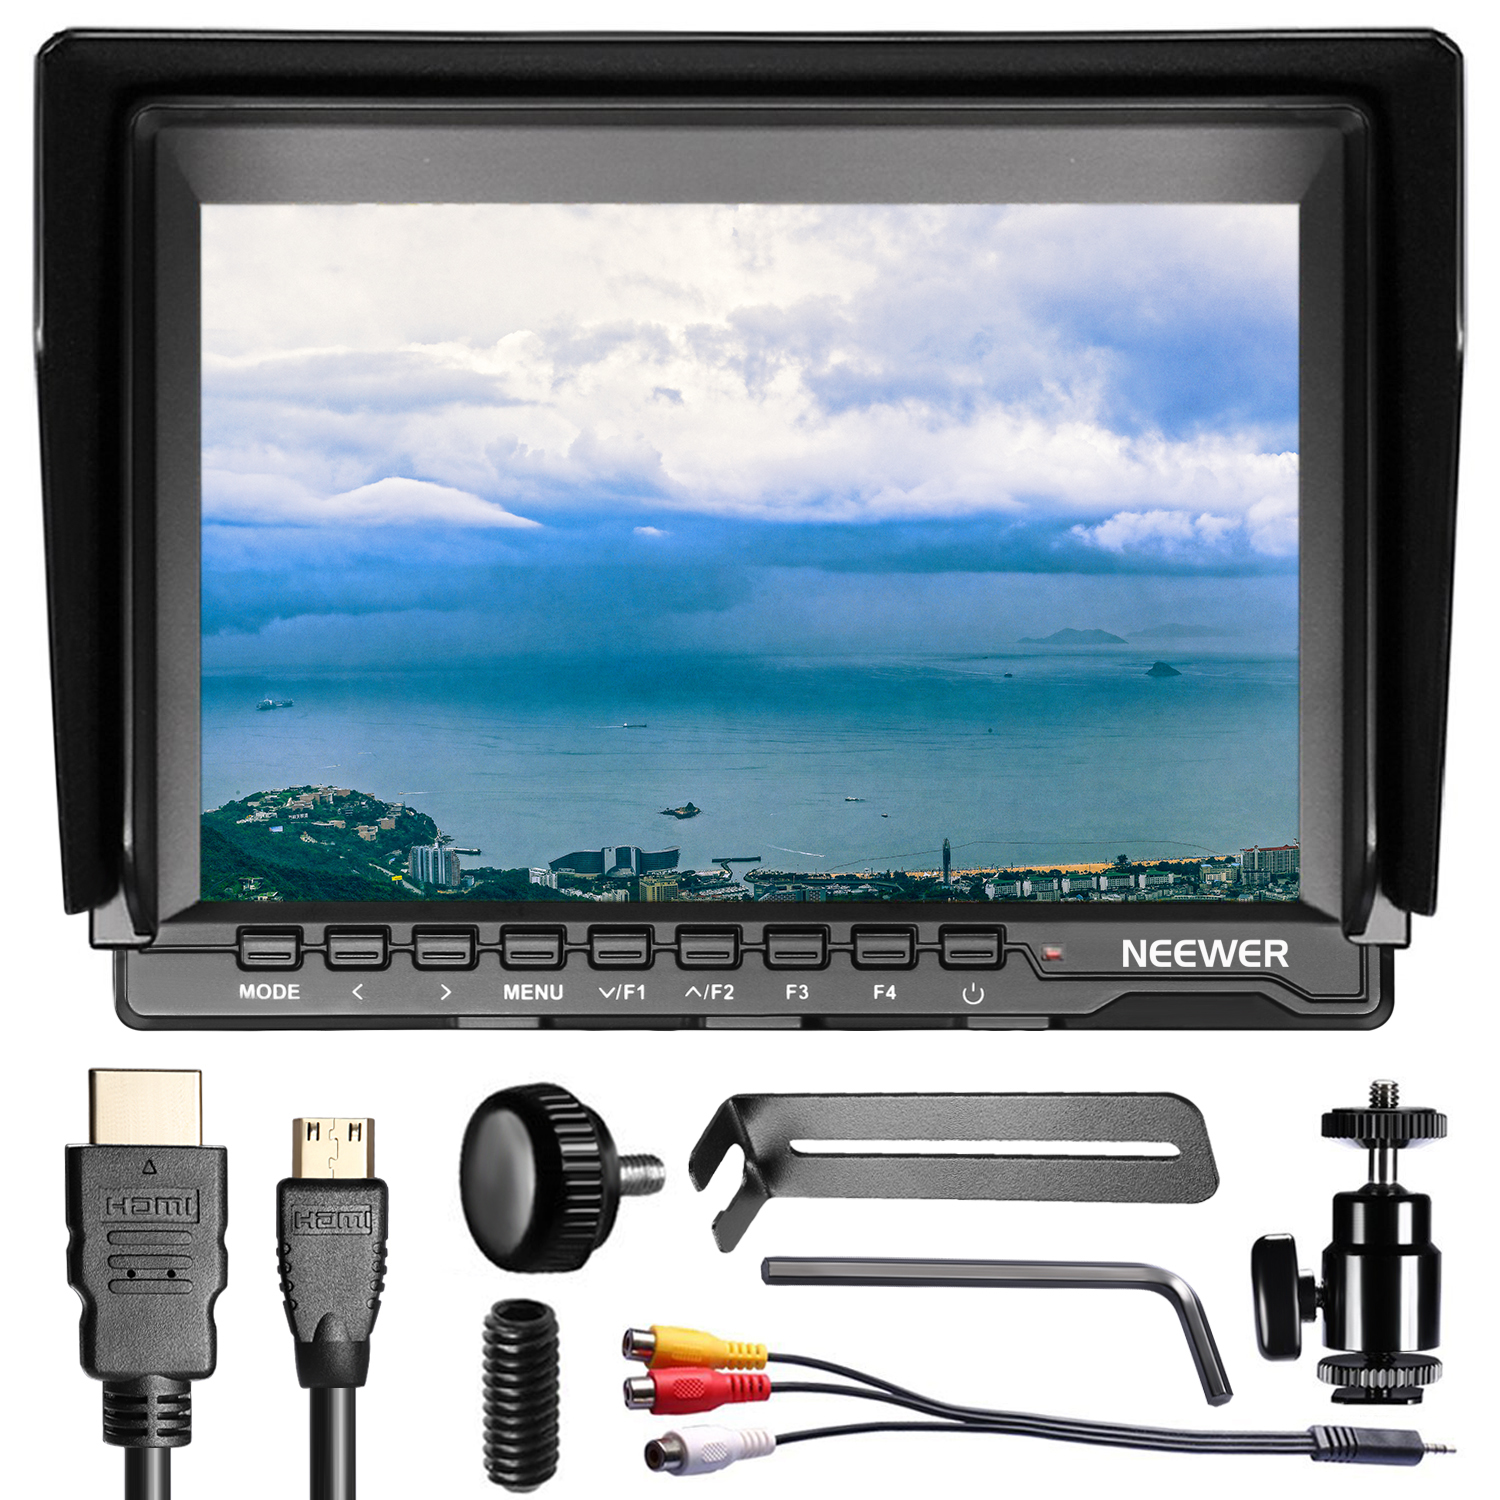 Neewer NW759(C) 7 inches 1280x800 IPS Screen Field Monitor with 1 Mini HDMI Cable for BMPCC AV Cable for FPV Image